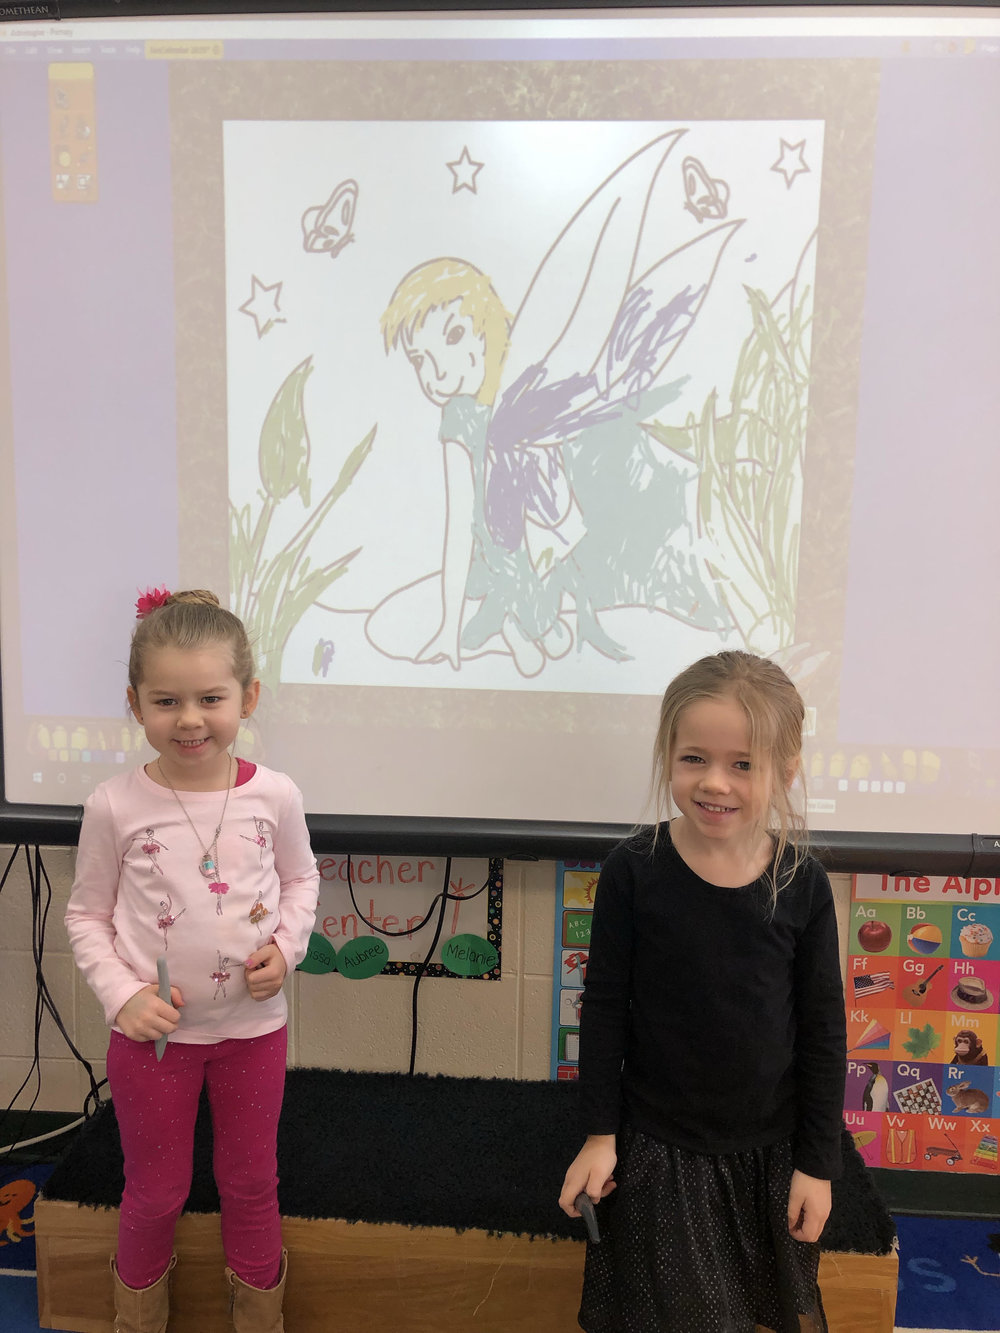 coloring on the promethean board during play time